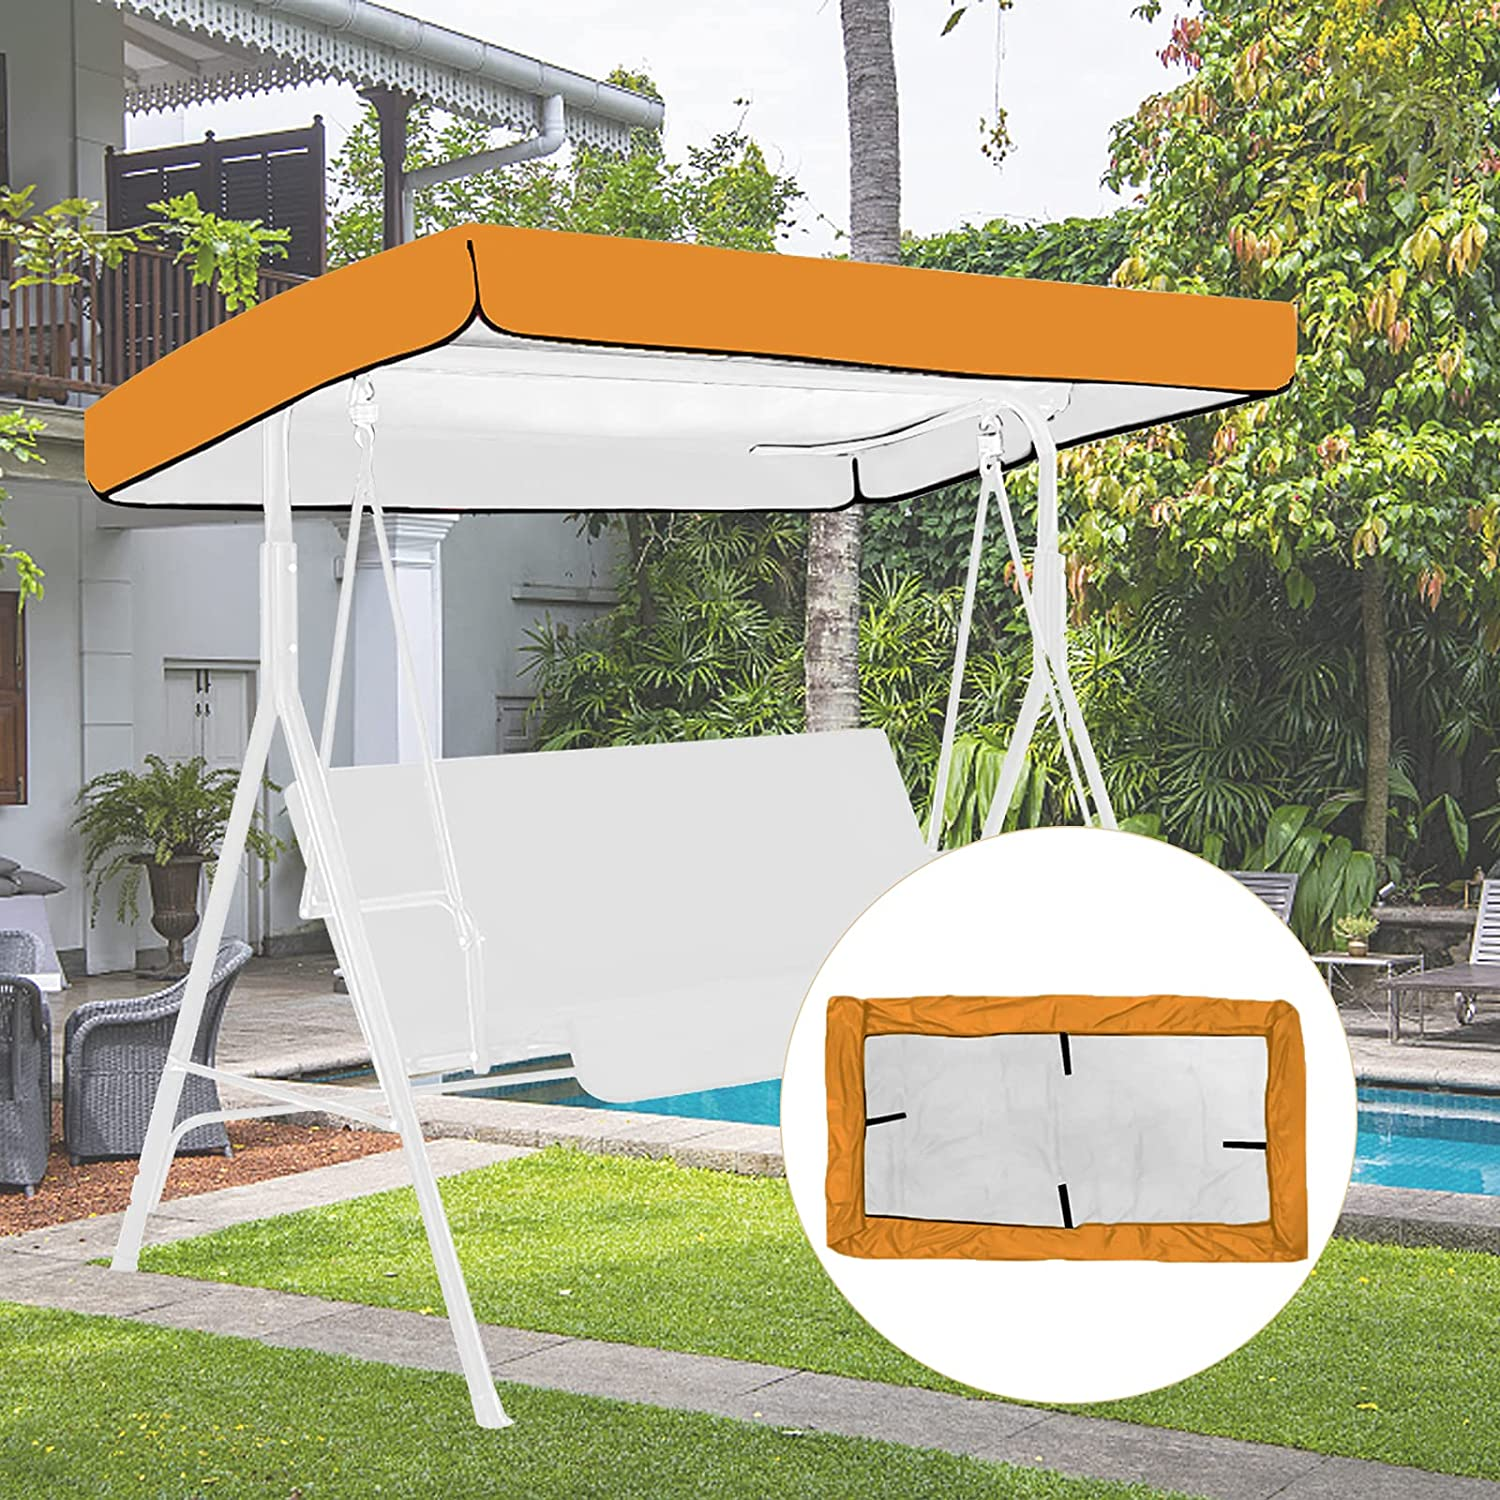 Outdoor Patio Swing Canopy Replacement Top Cover, Replacement Cover for Swing Canopy, Lawn Garden Seater Sun Shade Outdoor Porch Swing Hammock Waterproof Protector Furniture Cover (Coffee Color)